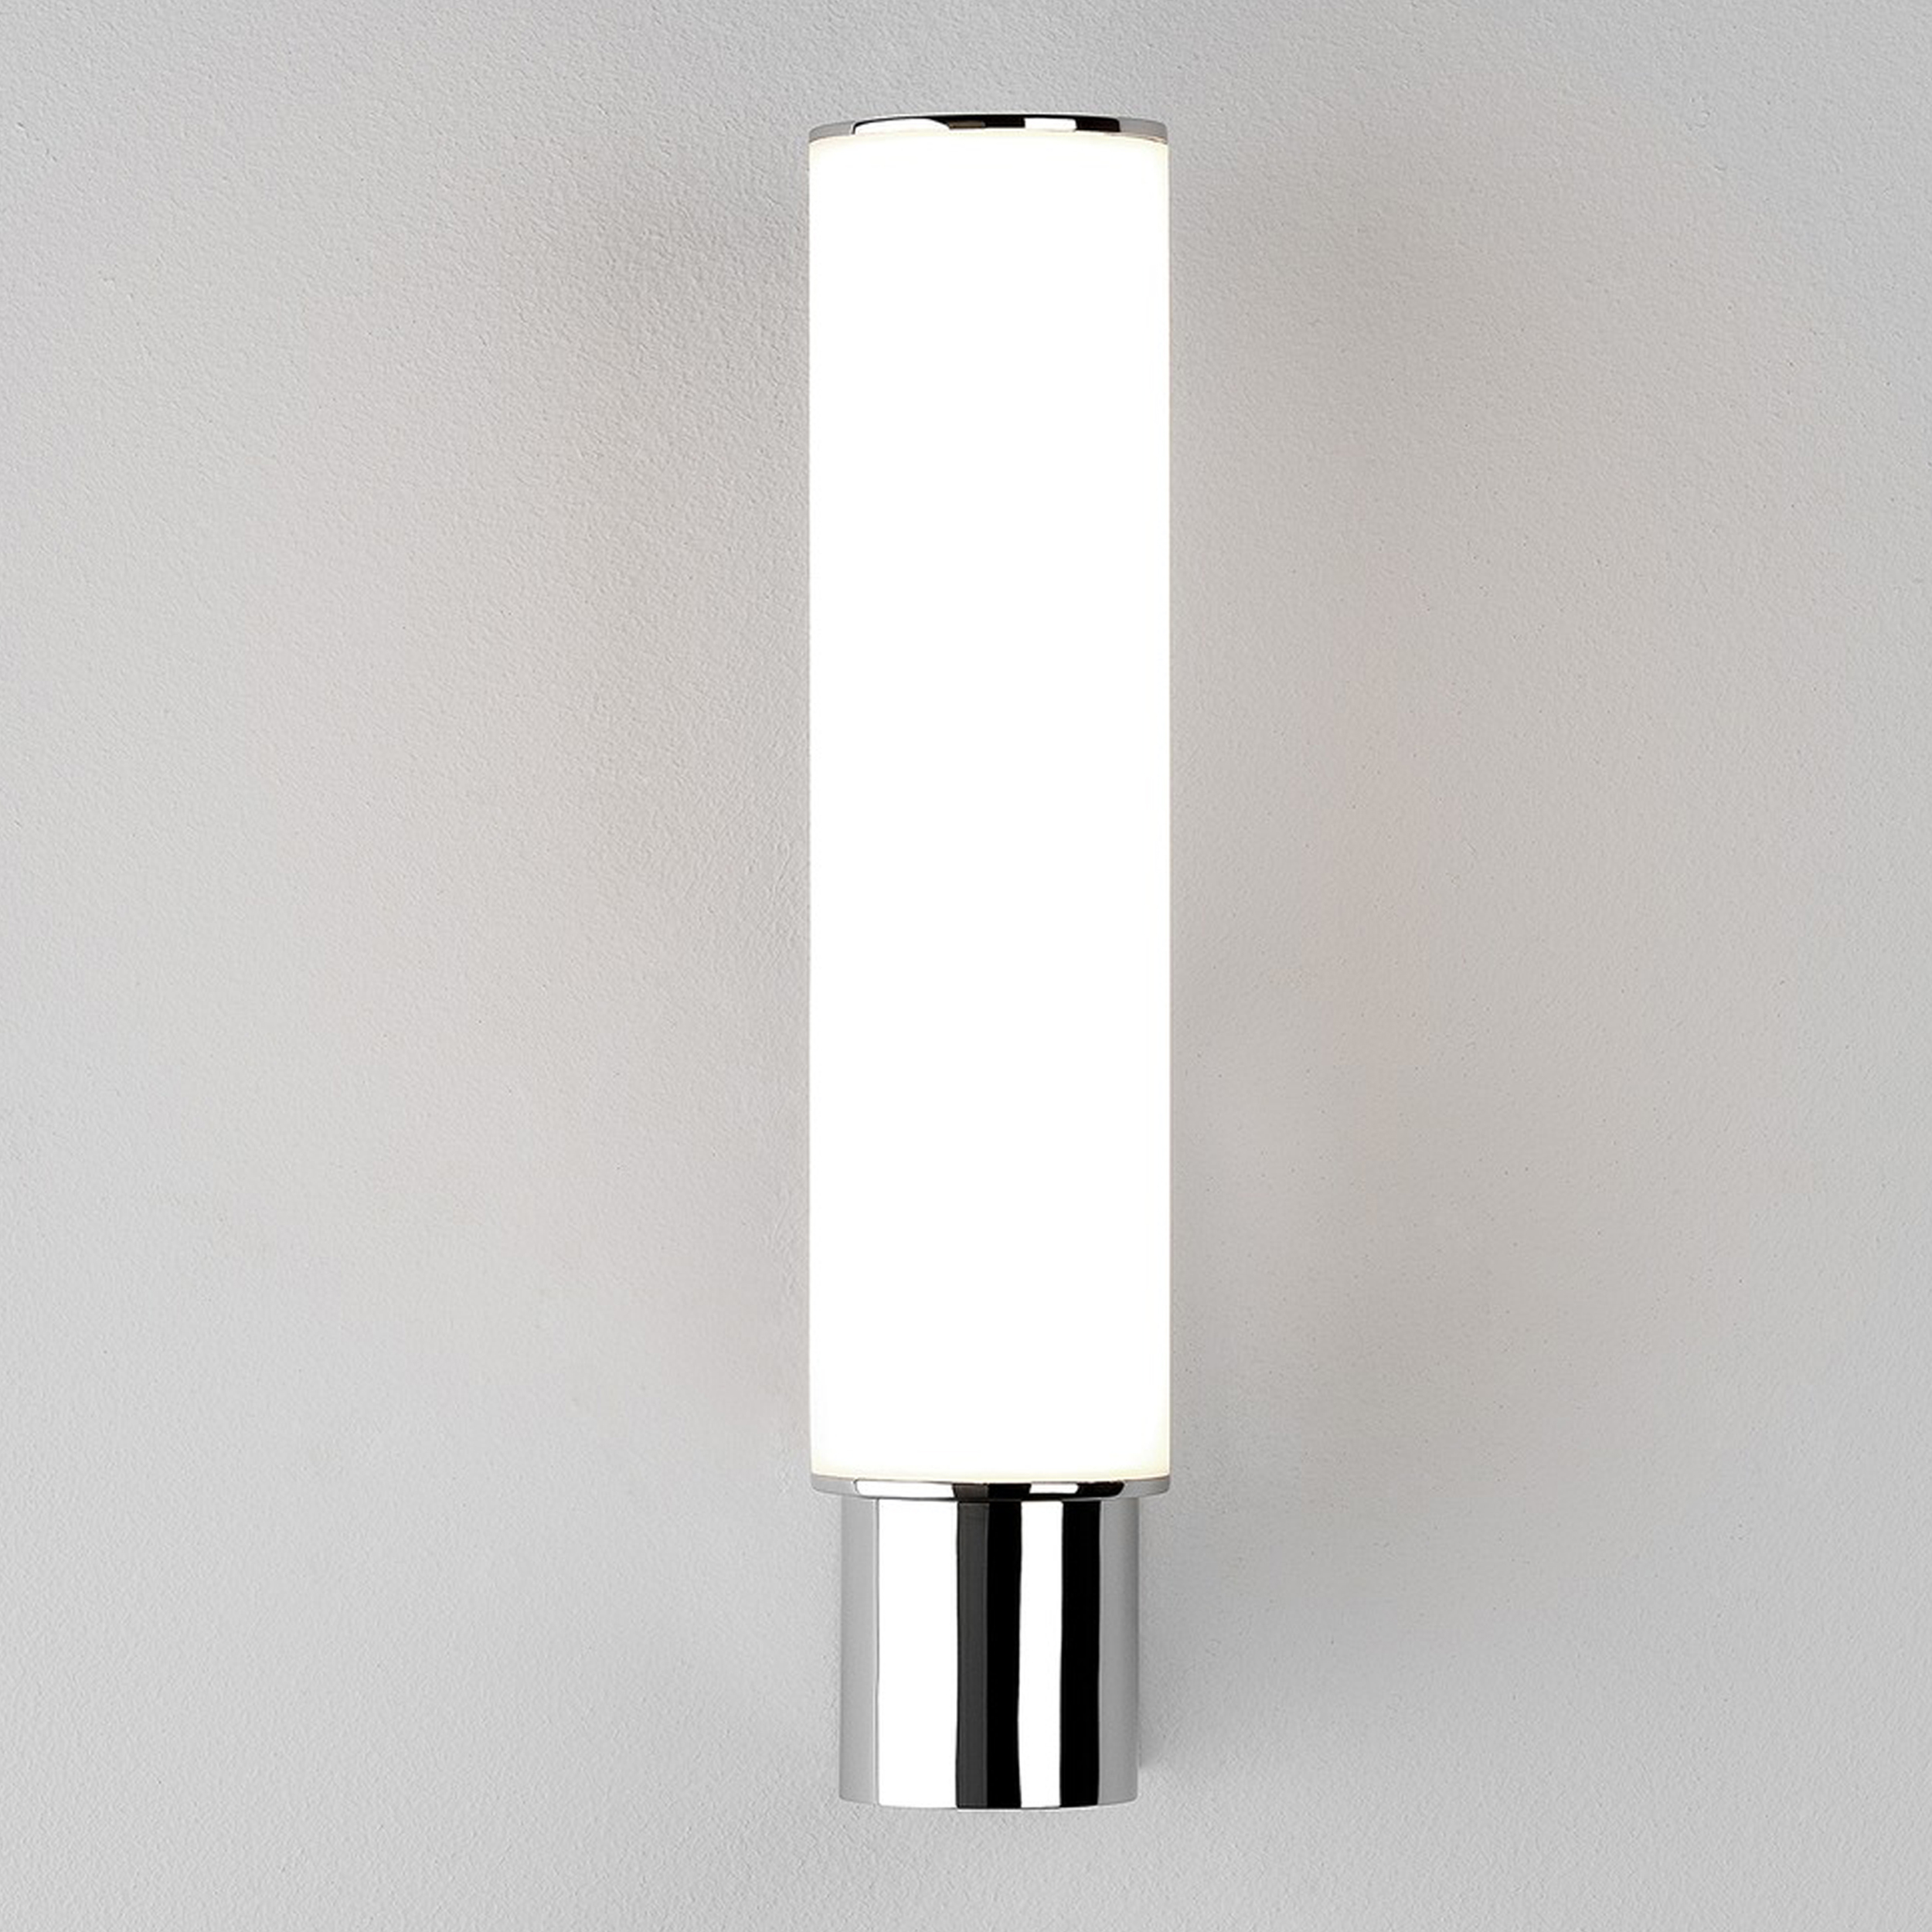 Led Wall Light Crompton: Buy The Kyoto LED Wall Light